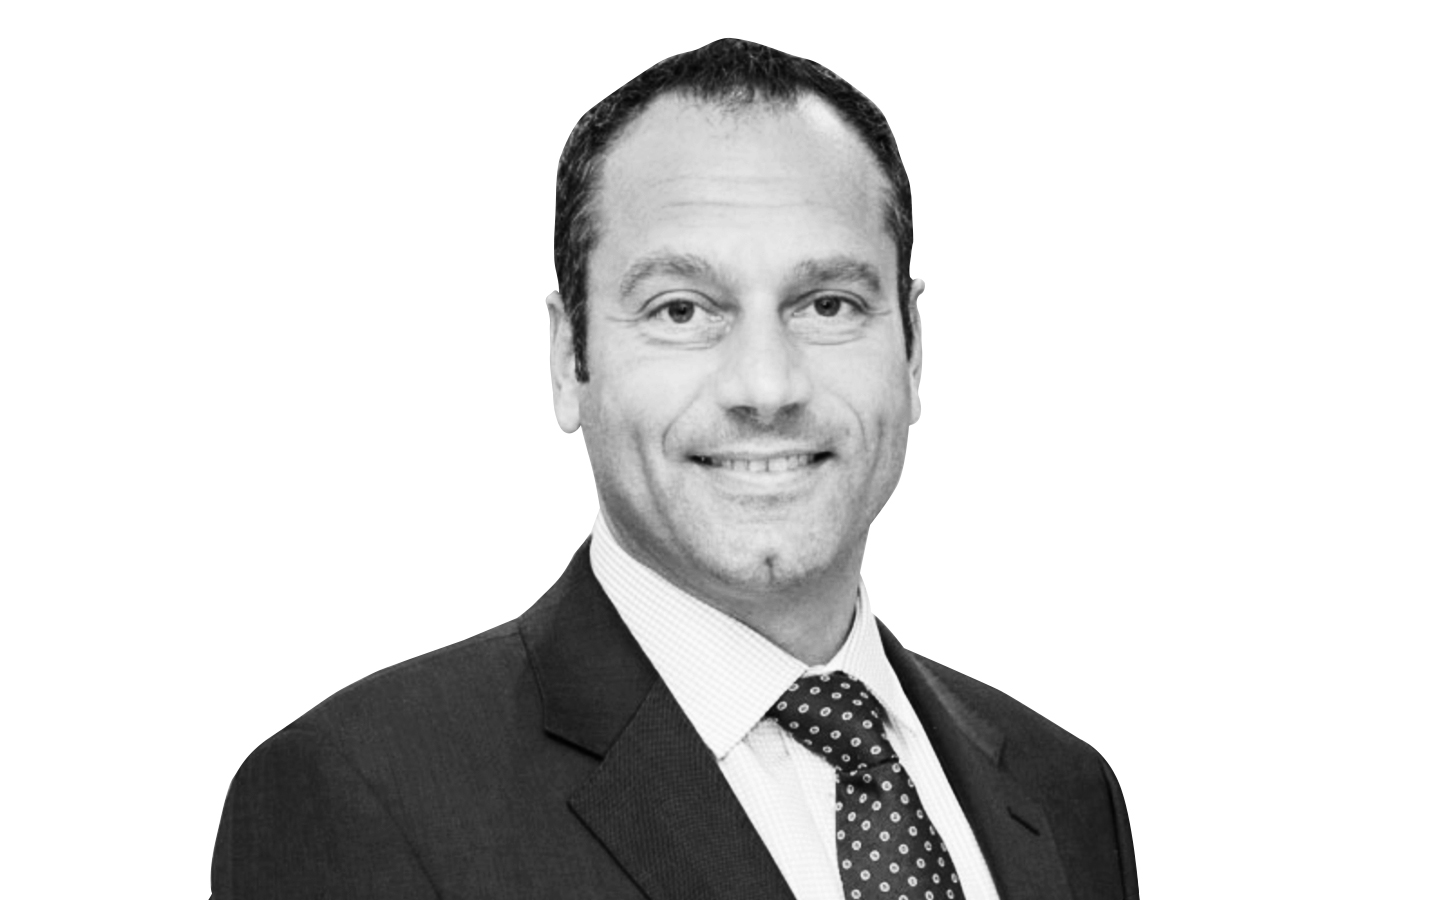 Mario Volpi weighs in on the new UAE property laws